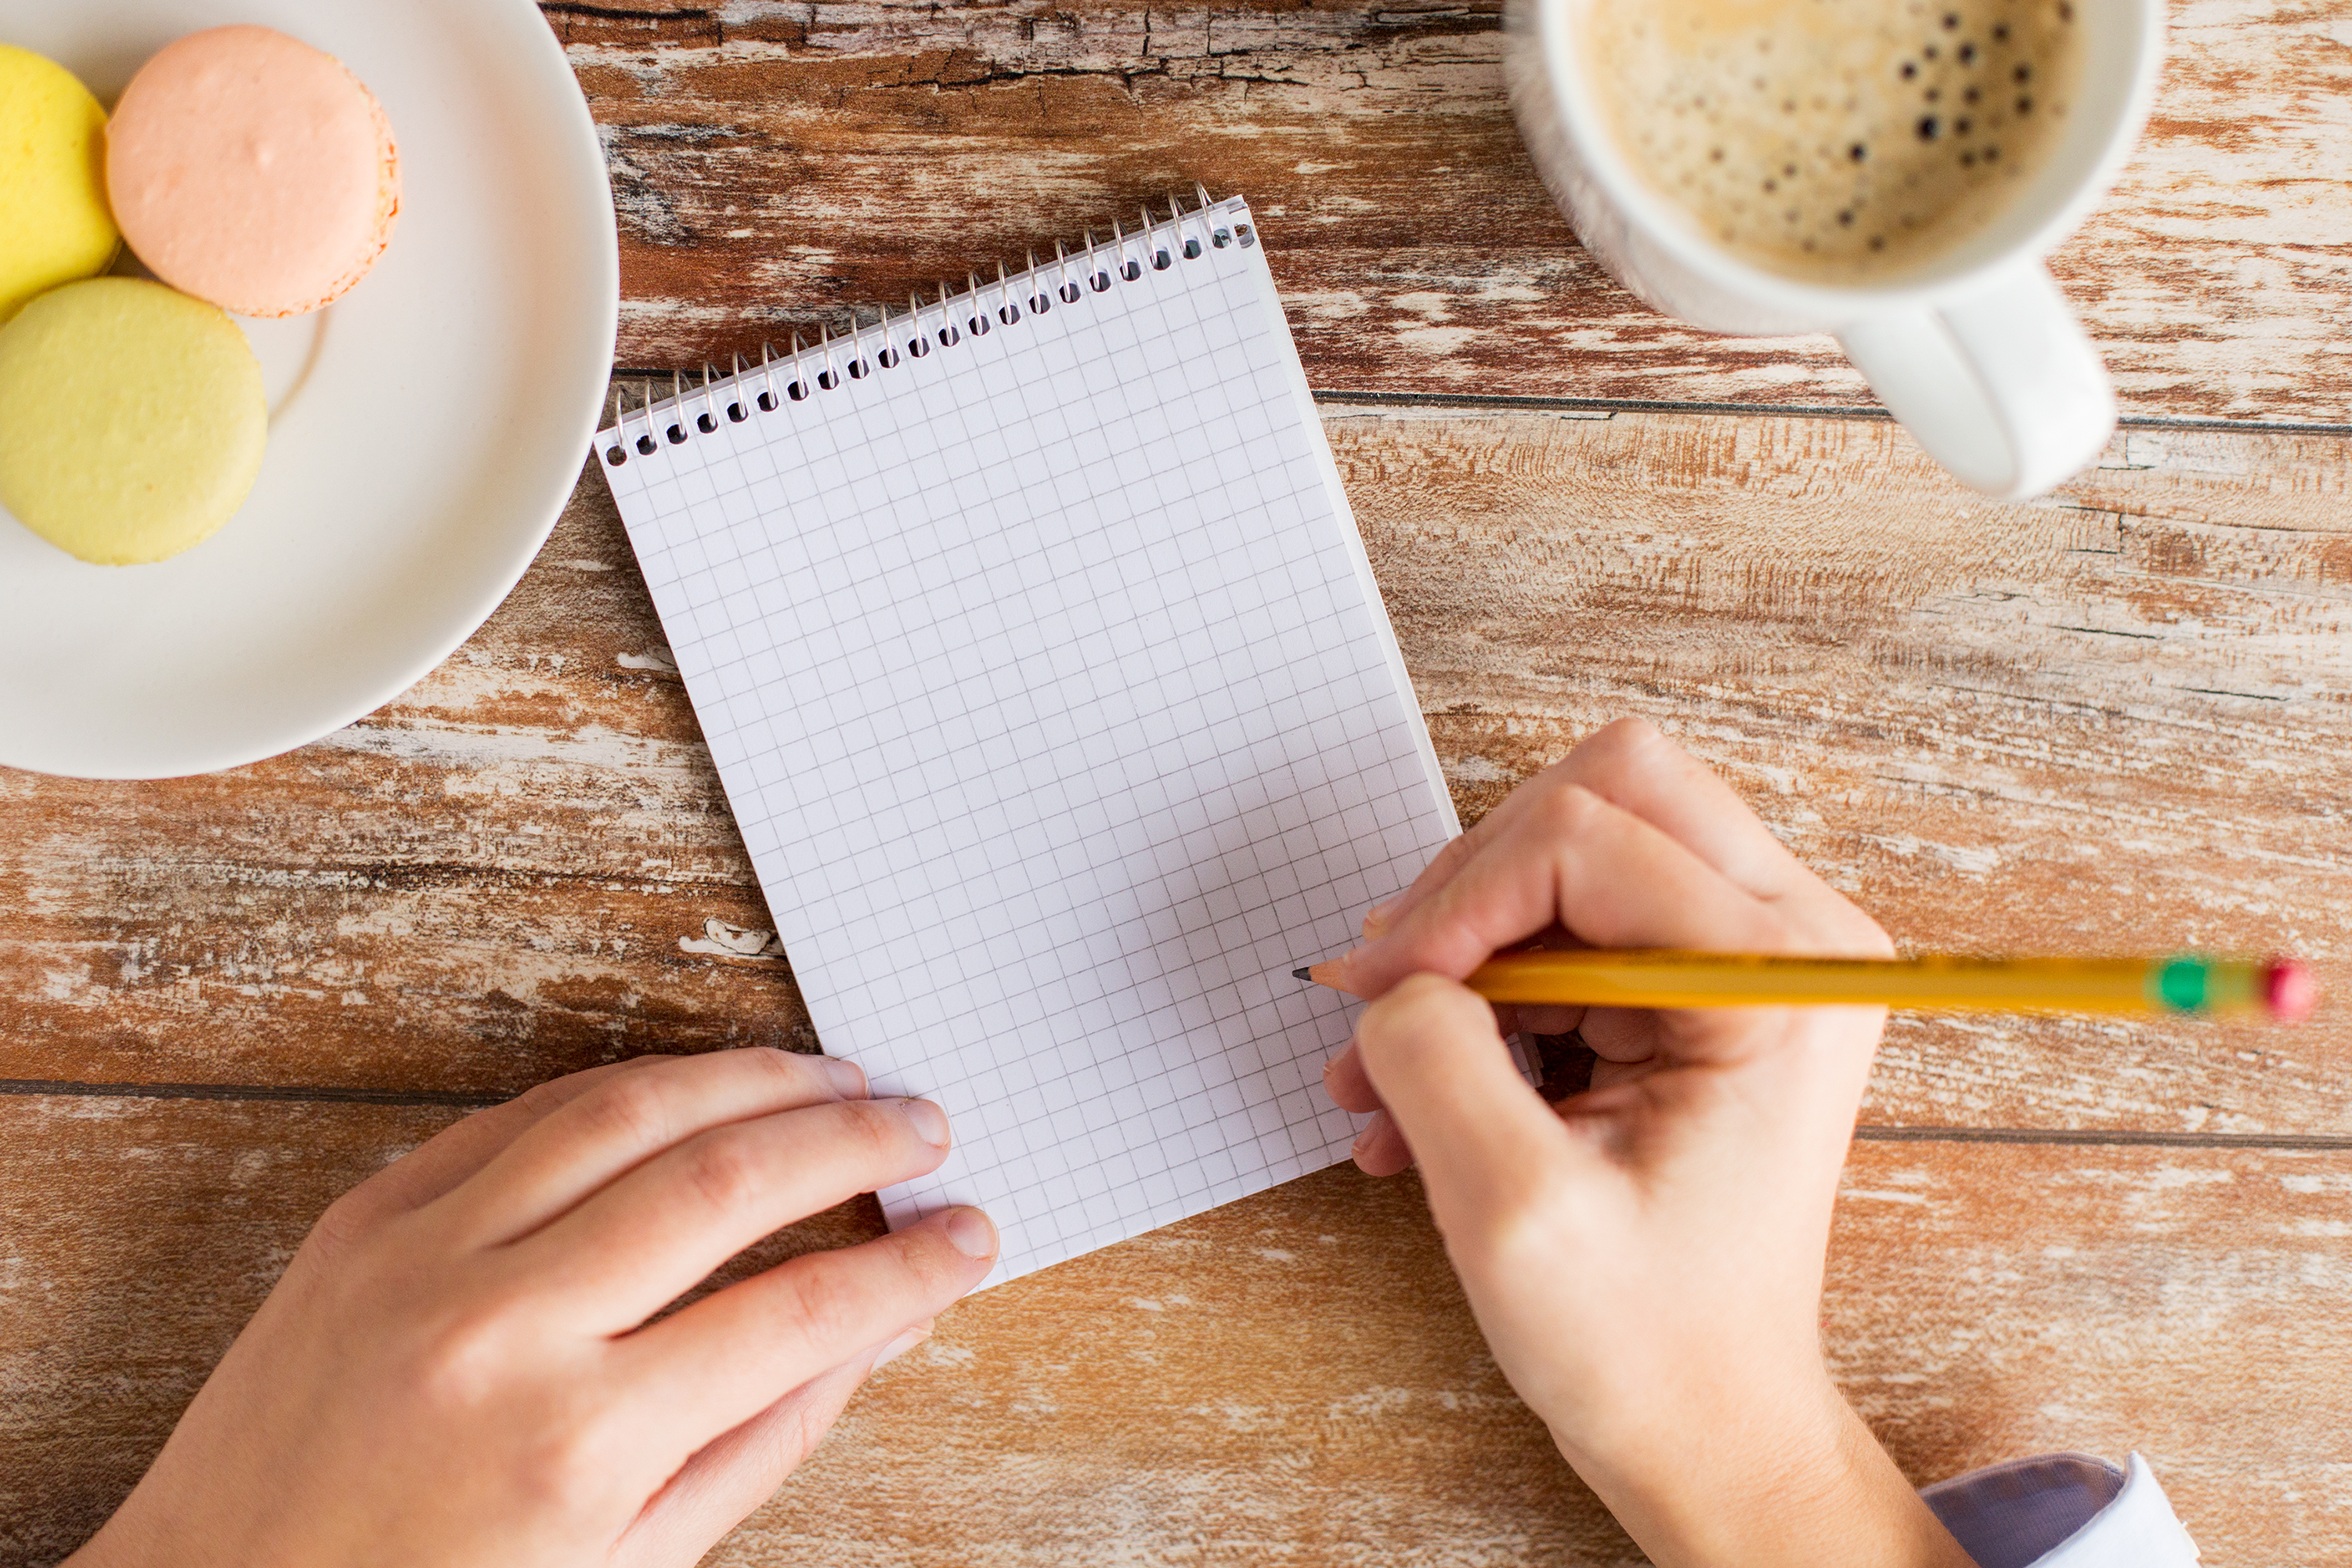 business, education and people concept - close up of female hands with with notebook, pencil, coffee and cookies on table